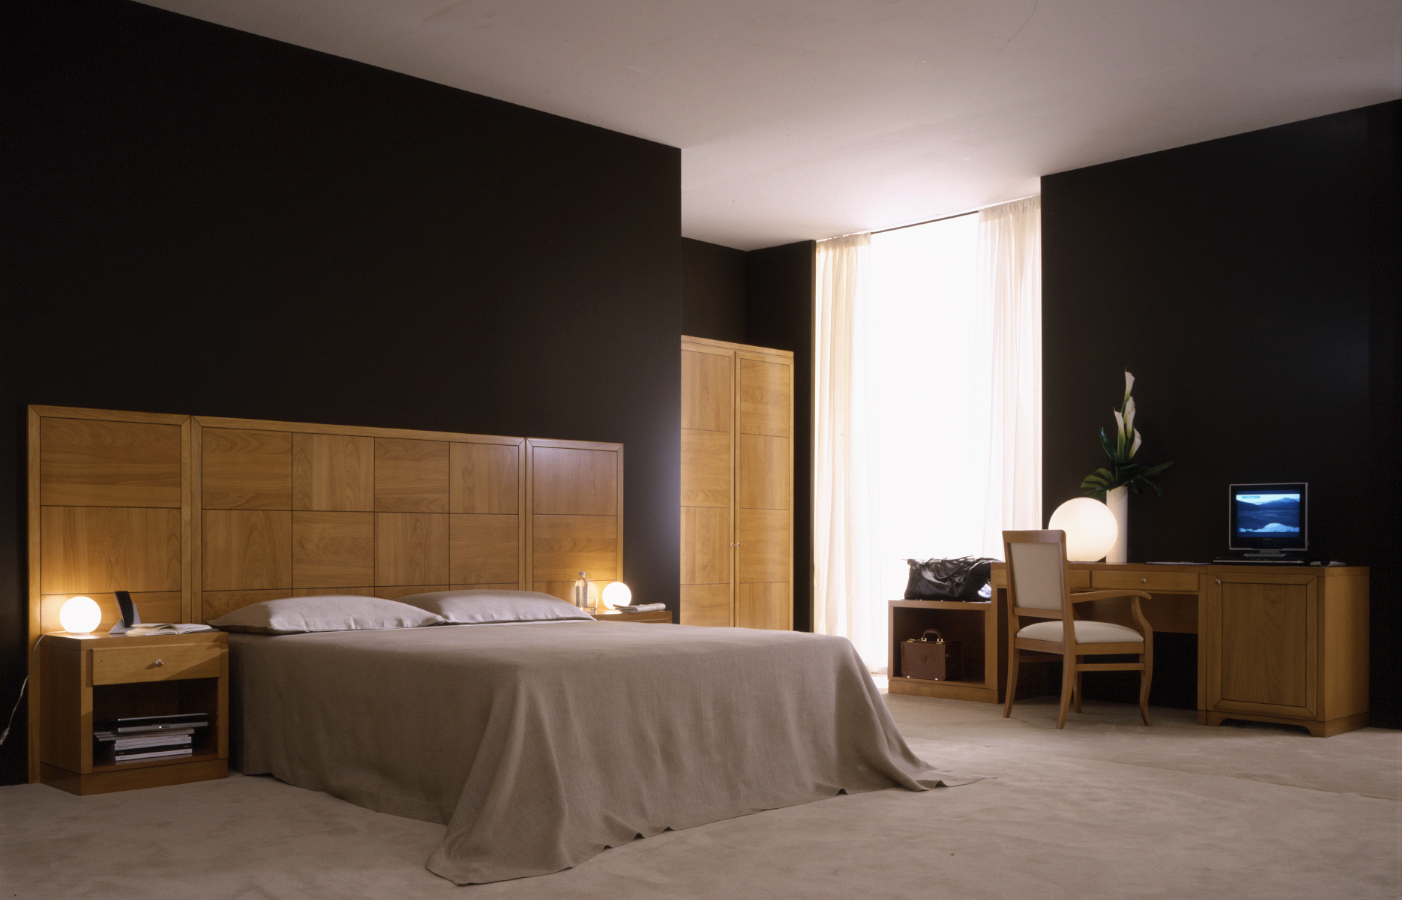 Chambre d 39 h tel contemporain 5 0 100 0 pi ces for Hotel contemporain